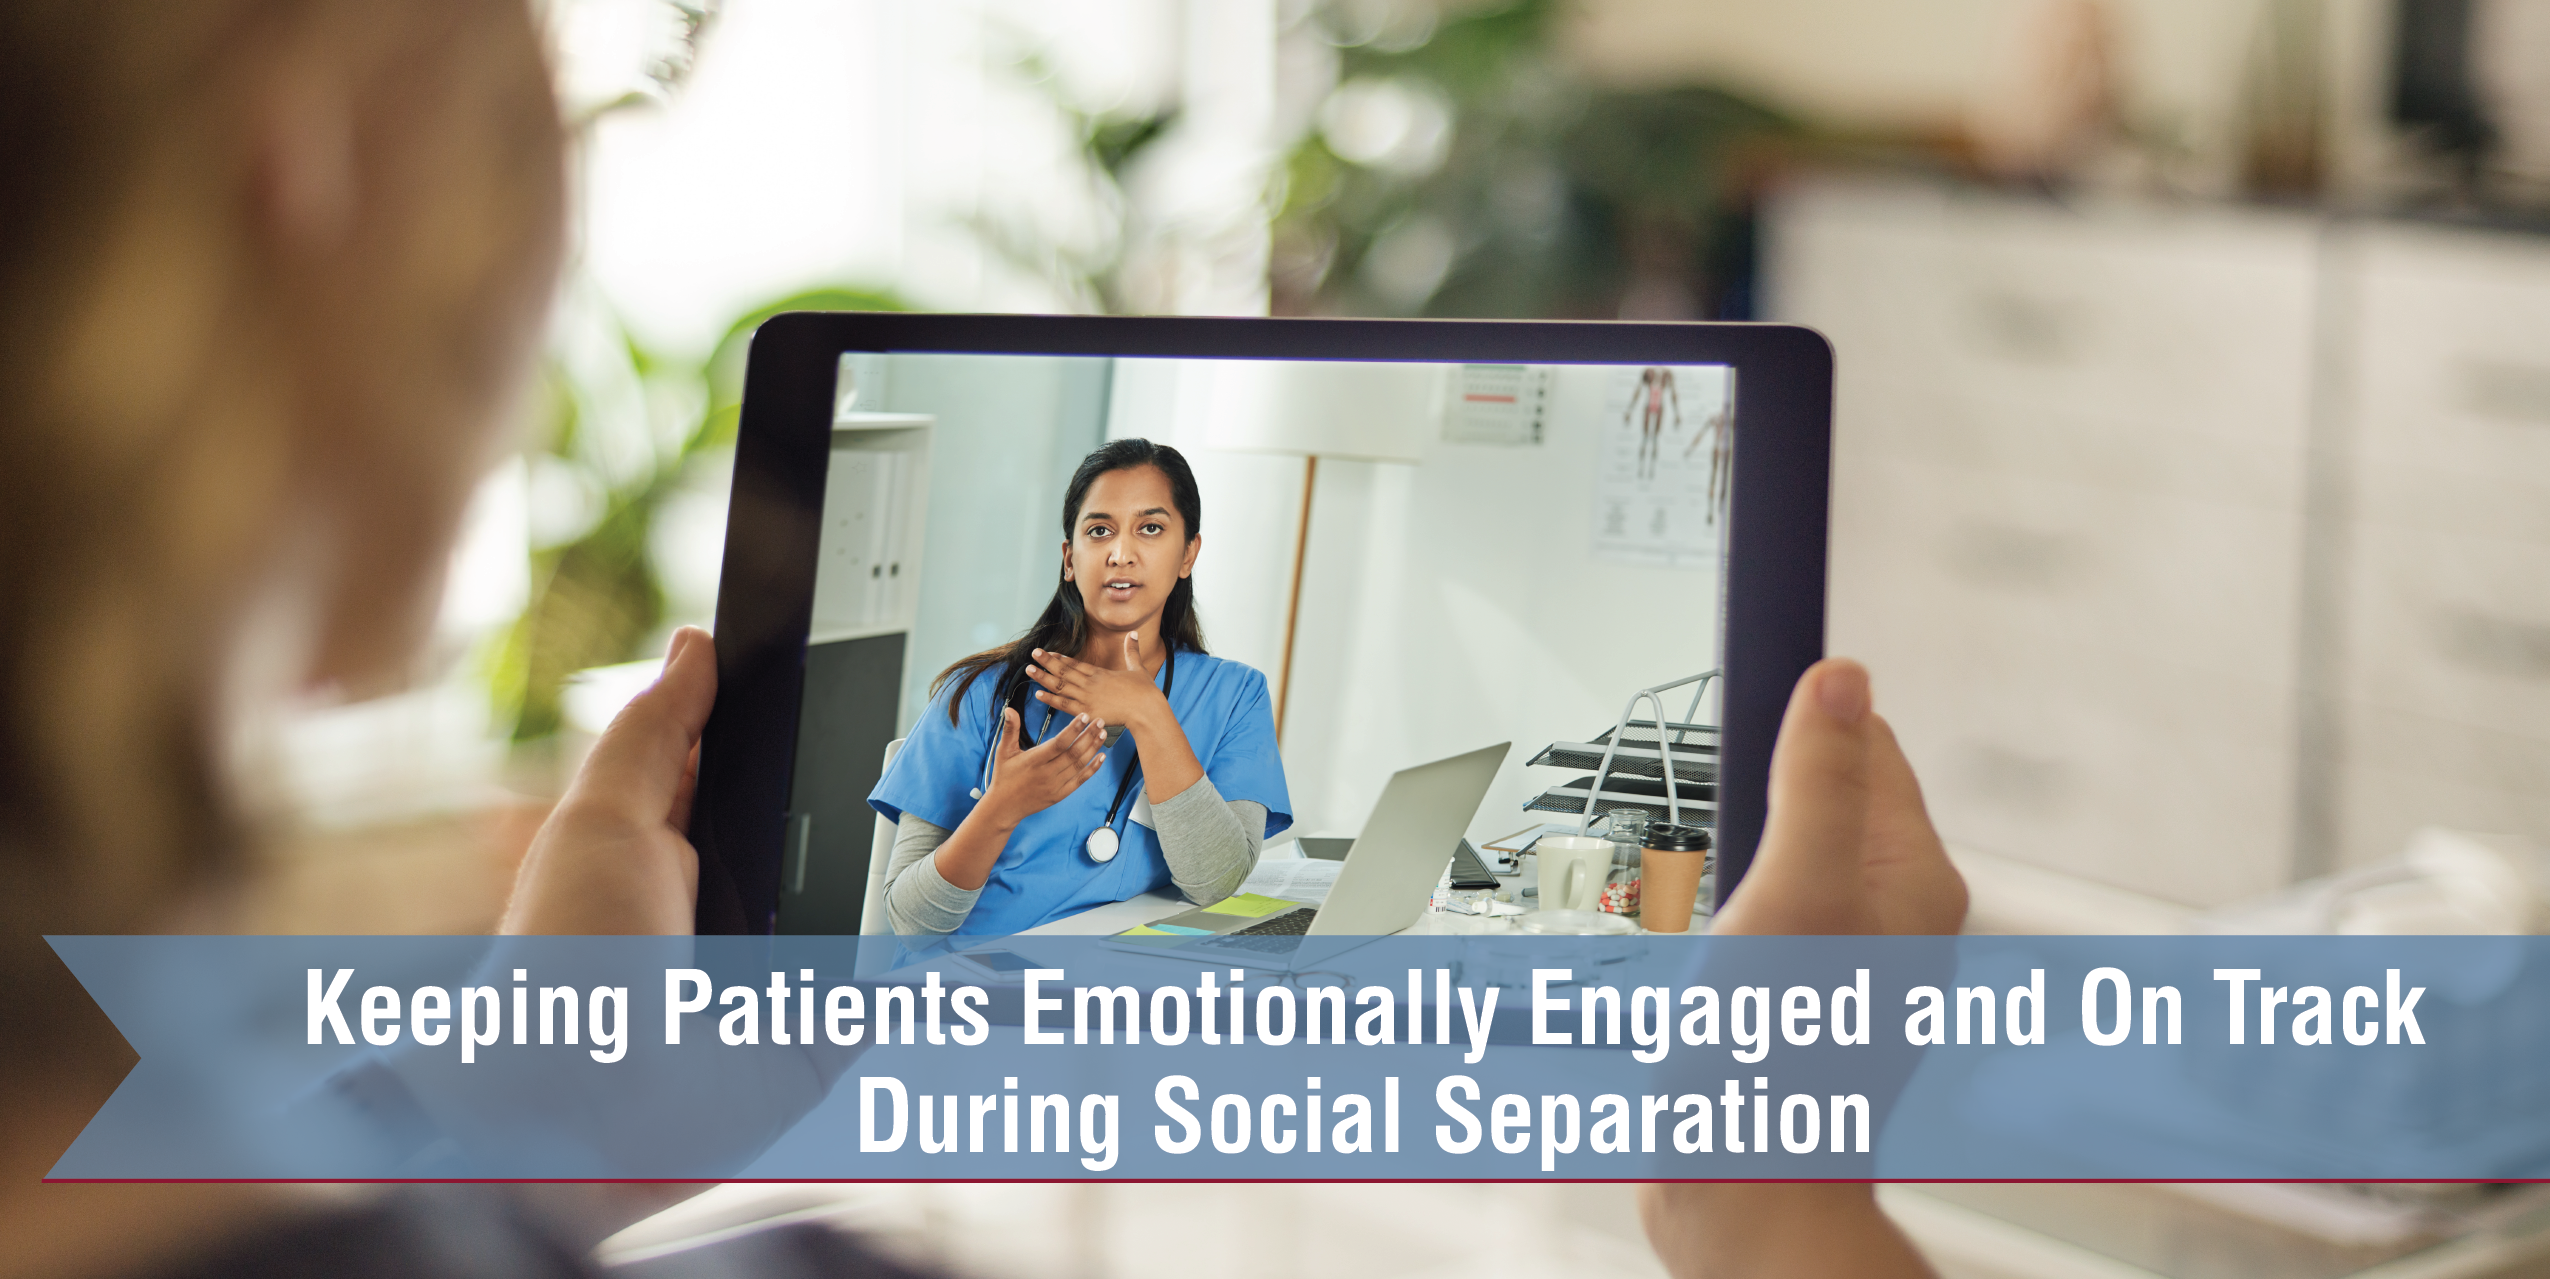 Keeping Patients Emotionally Engaged And On Track During Social Separation